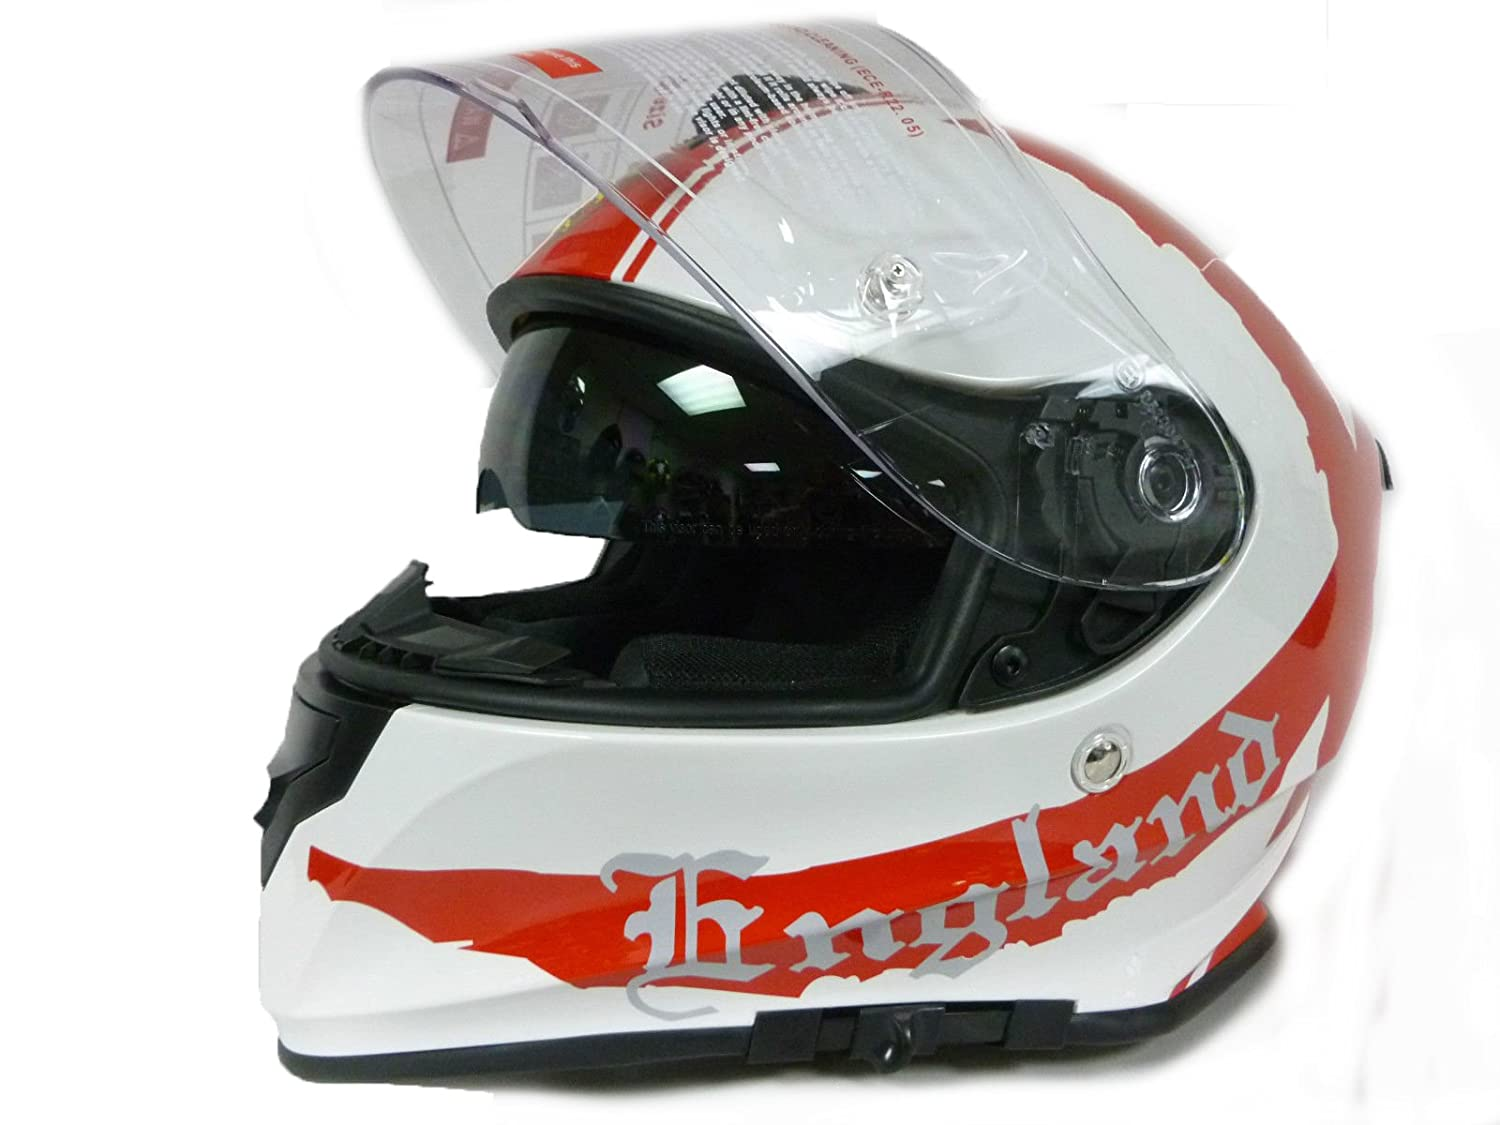 1630c67d Motorcycle helmet VCAN V127 ENGLAND Motorbike Scooter Full Face Crash  Racing Helmet, New 2016 (RED-L): Amazon.co.uk: Sports & Outdoors